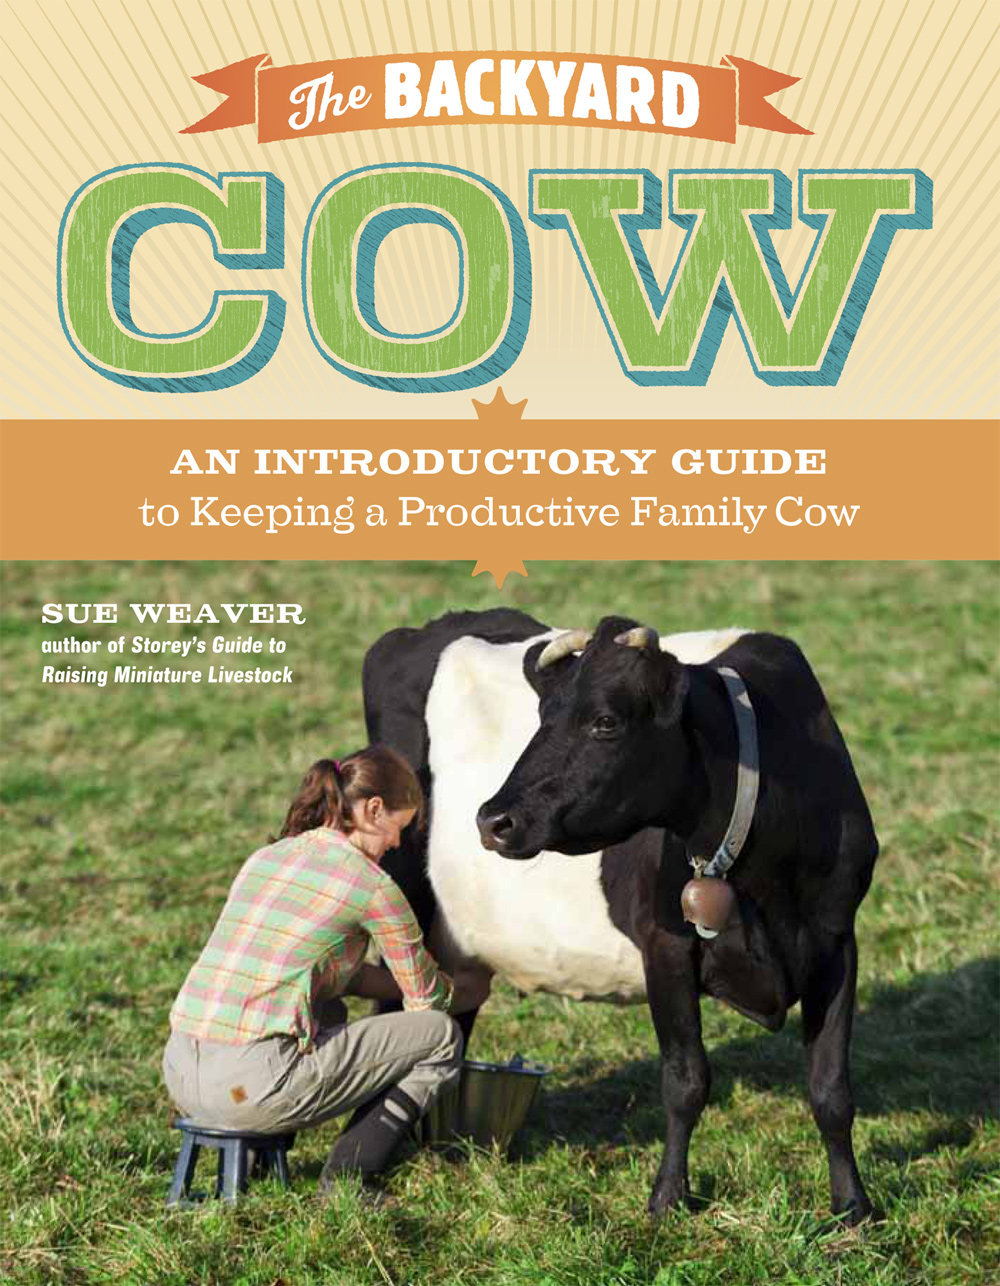 The Backyard Cow An Introductory Guide to Keeping a Productive Family Cow - Sue Weaver